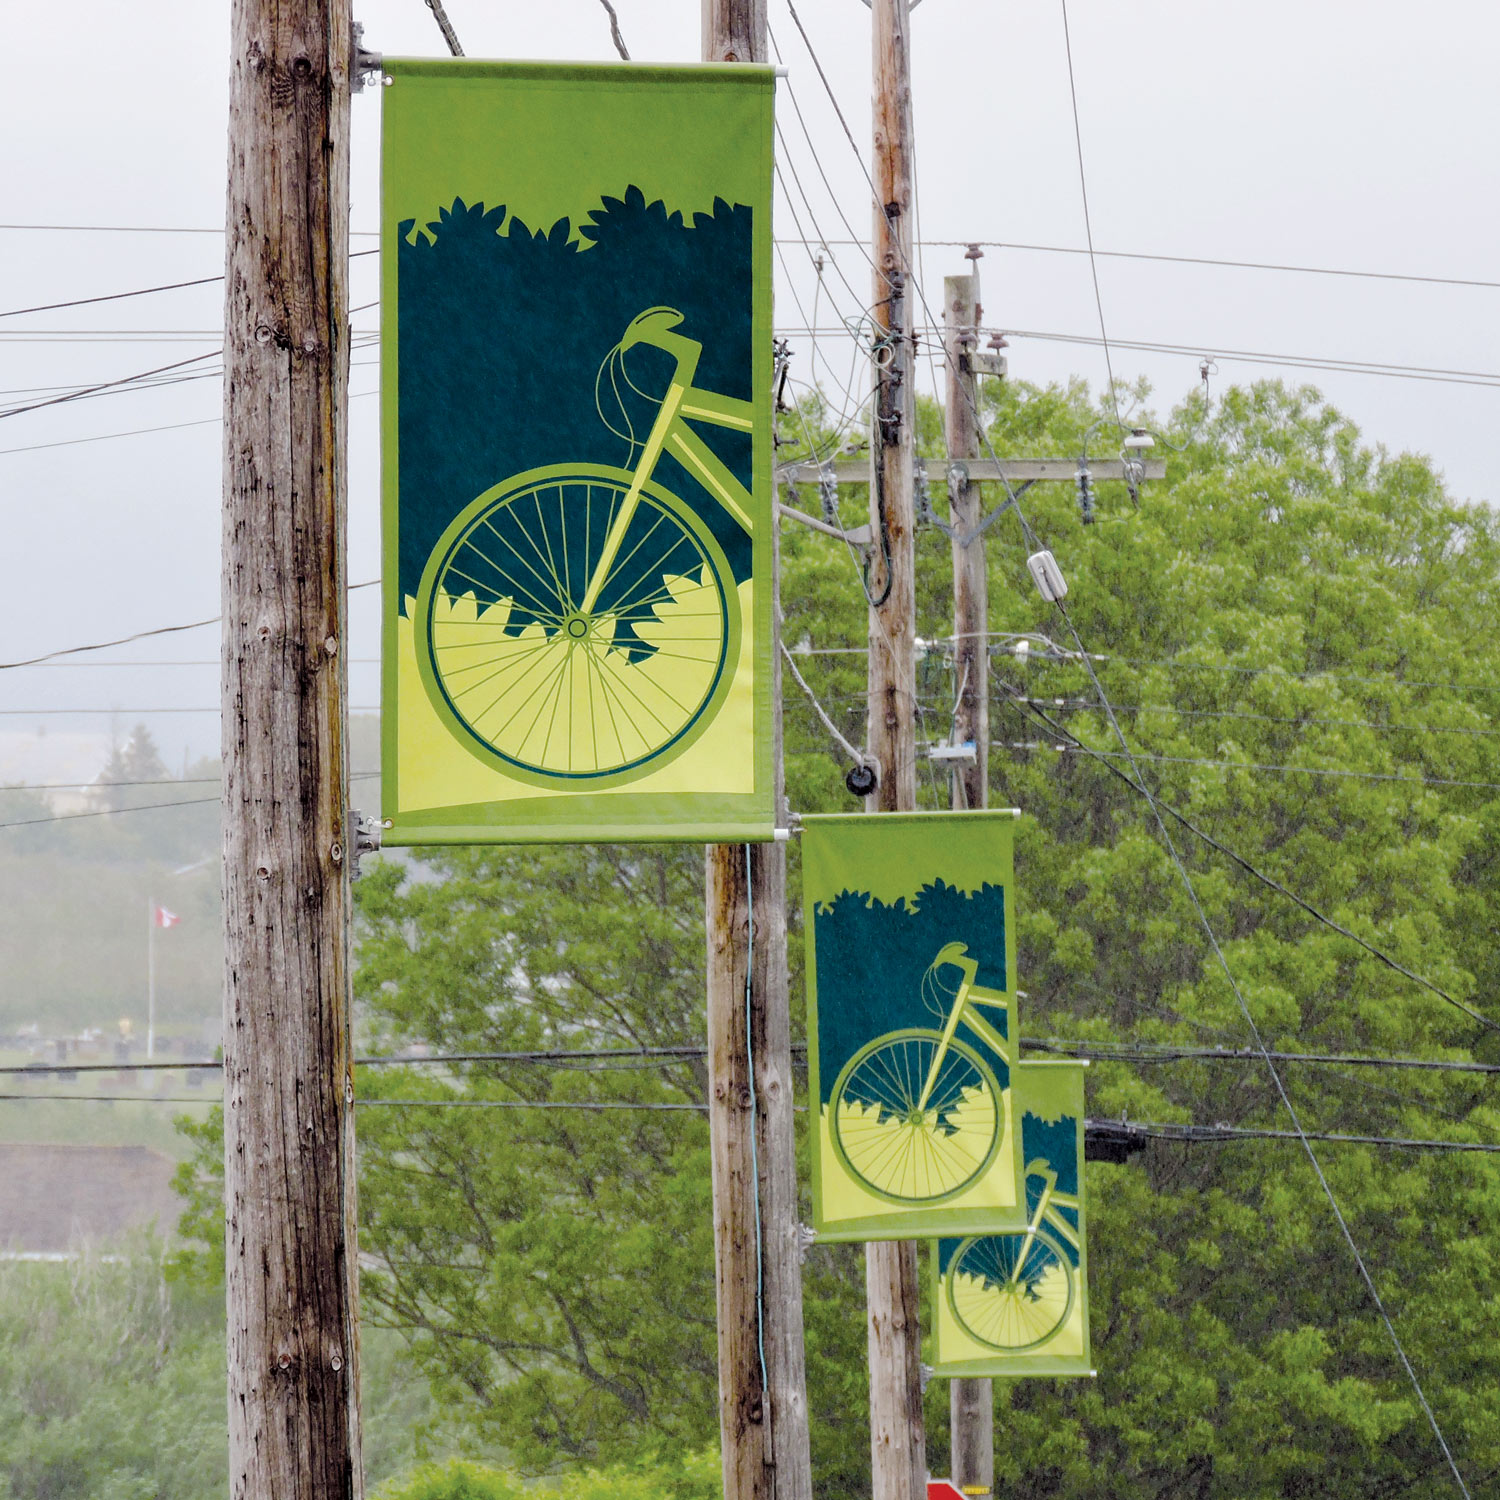 DISTRICT BOUNDARY BANNERS To mark the perimeters, we designed three banners for each of the districts: historic houses district; recreation zone; and historic waterfront.